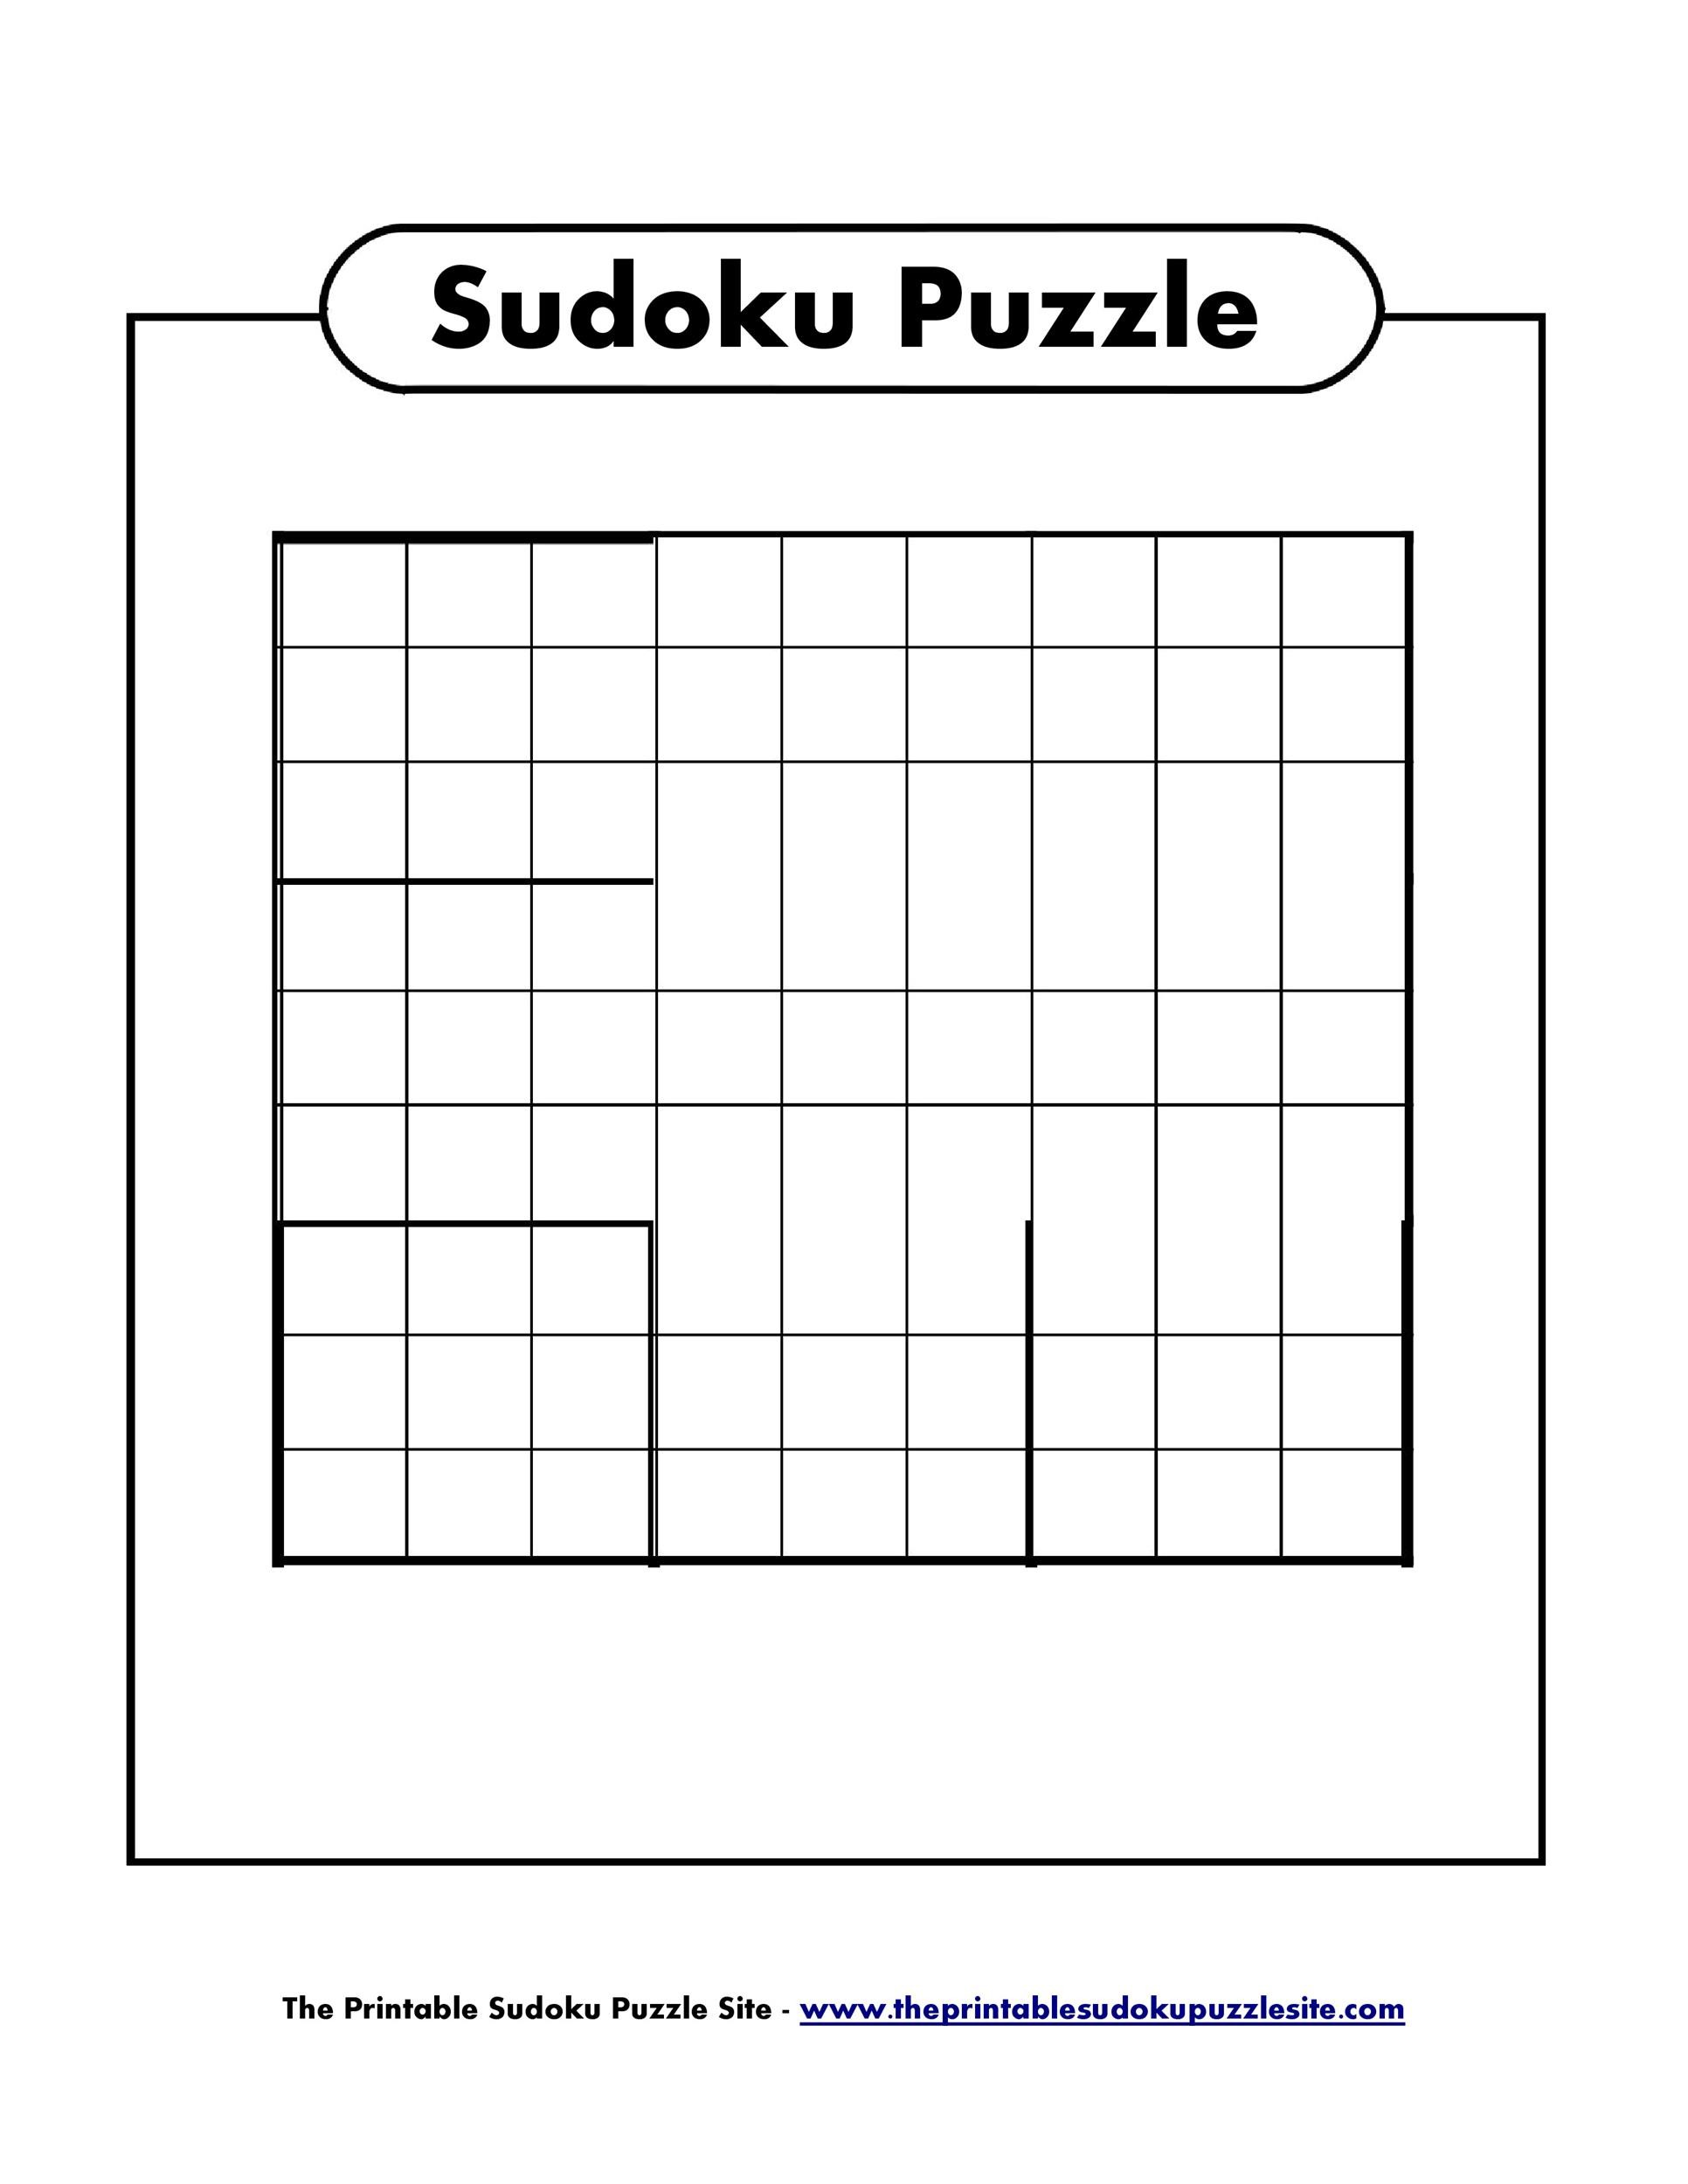 picture regarding Blank Sudoku Grid Printable named 50 Blank Sudoku Grids [Totally free Printable] ᐅ Template Lab